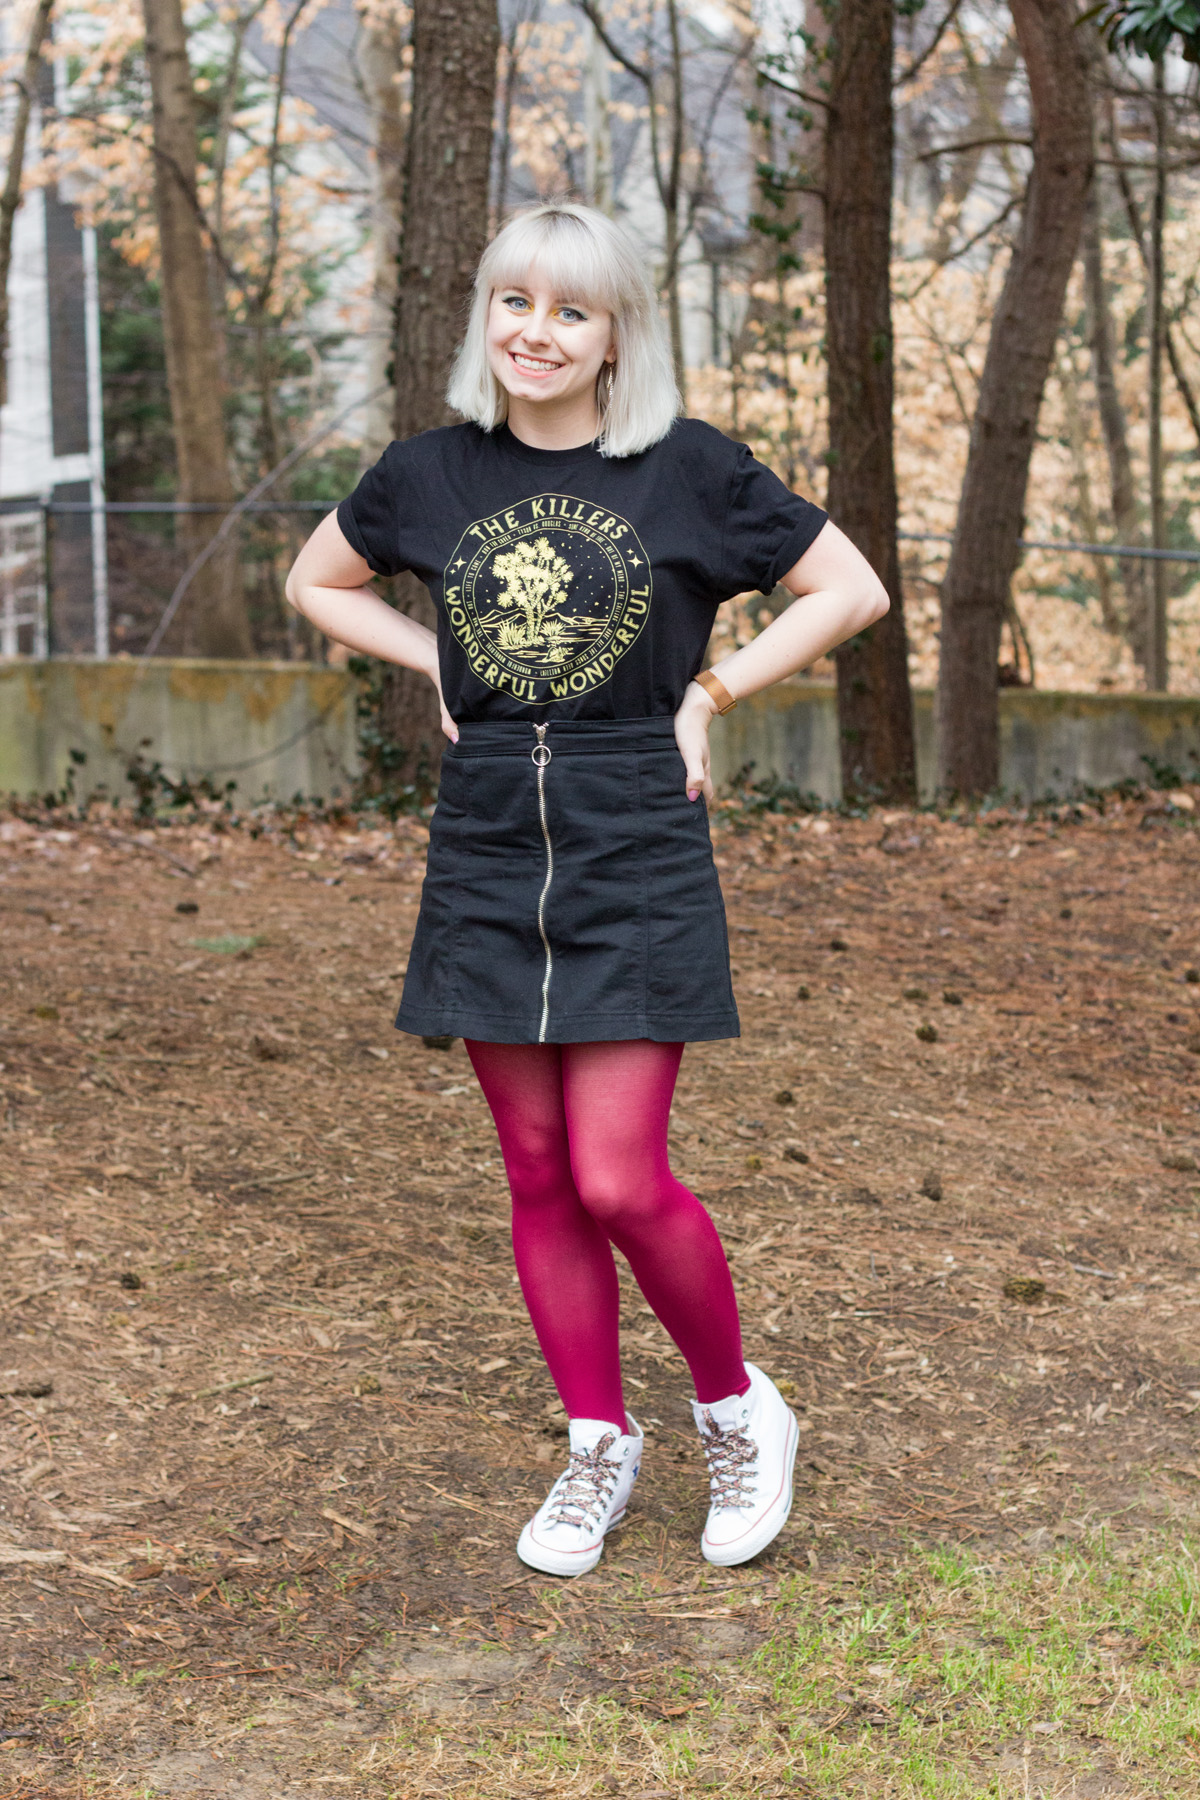 Styling a black concert t-shirt with a denim mini skirt and colorful tights